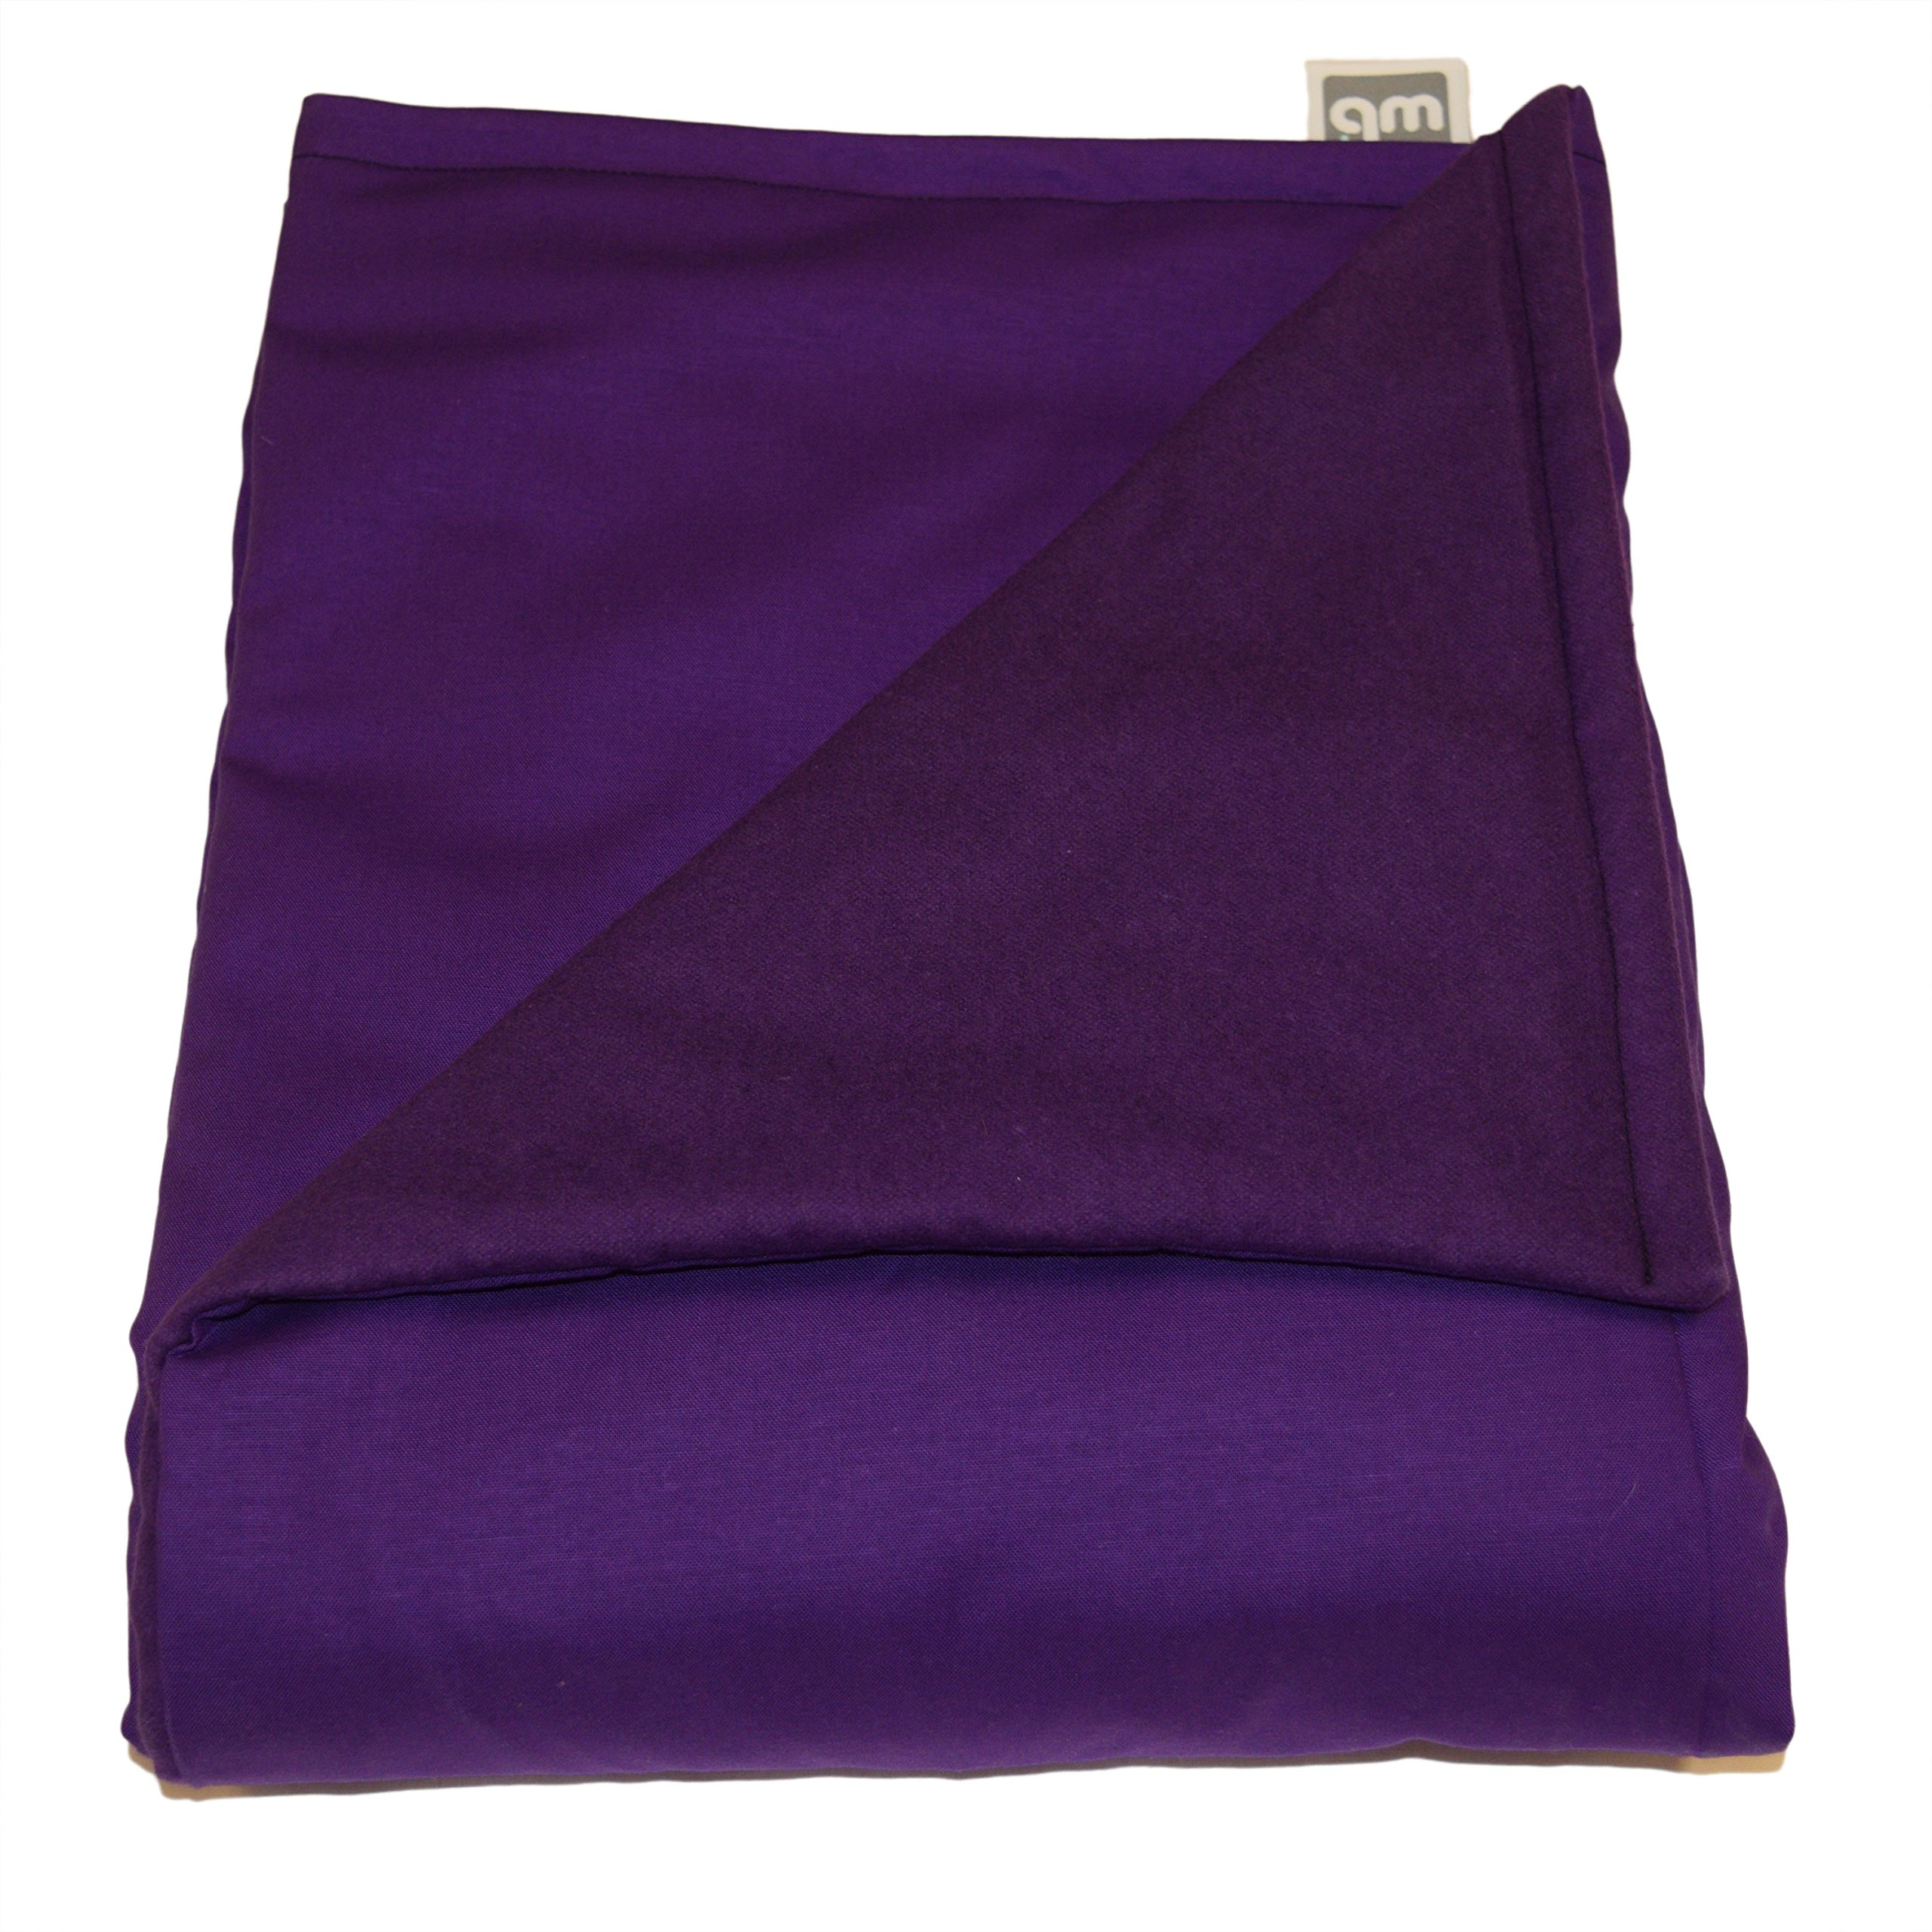 WEIGHTED BLANKETS PLUS LLC - CHILD SMALL WEIGHTED BLANKET - PURPLE - COTTON/FLANNEL (48''L x 30''W) 6lb MEDIUM PRESSURE